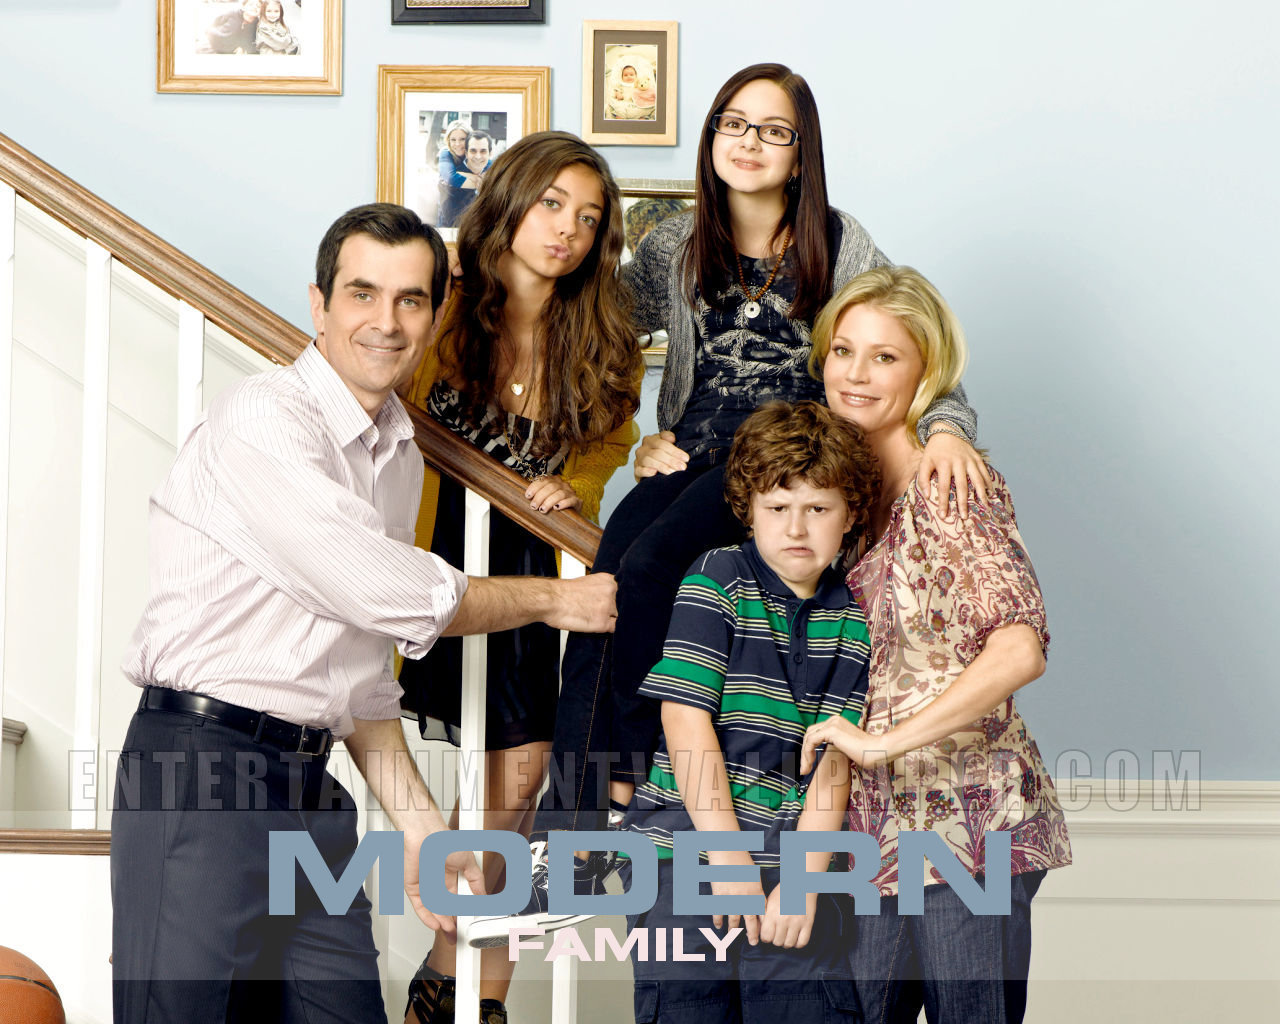 modern family images wallpaper - photo #30